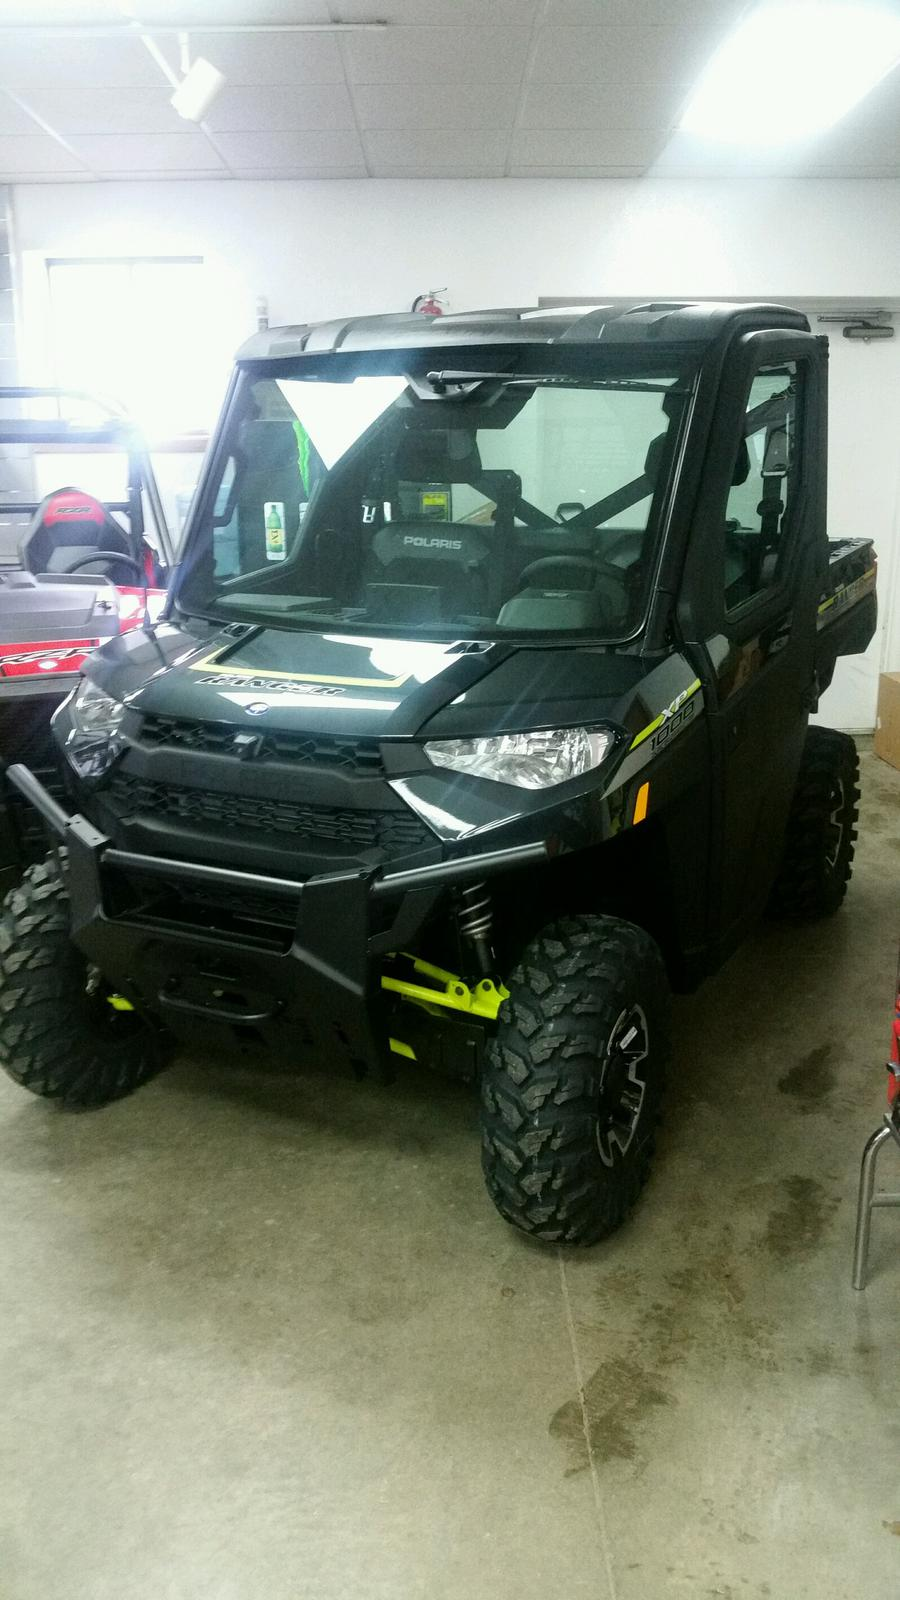 Inventory Racing Unlimited Fort Dodge , IA (515) 955-6000